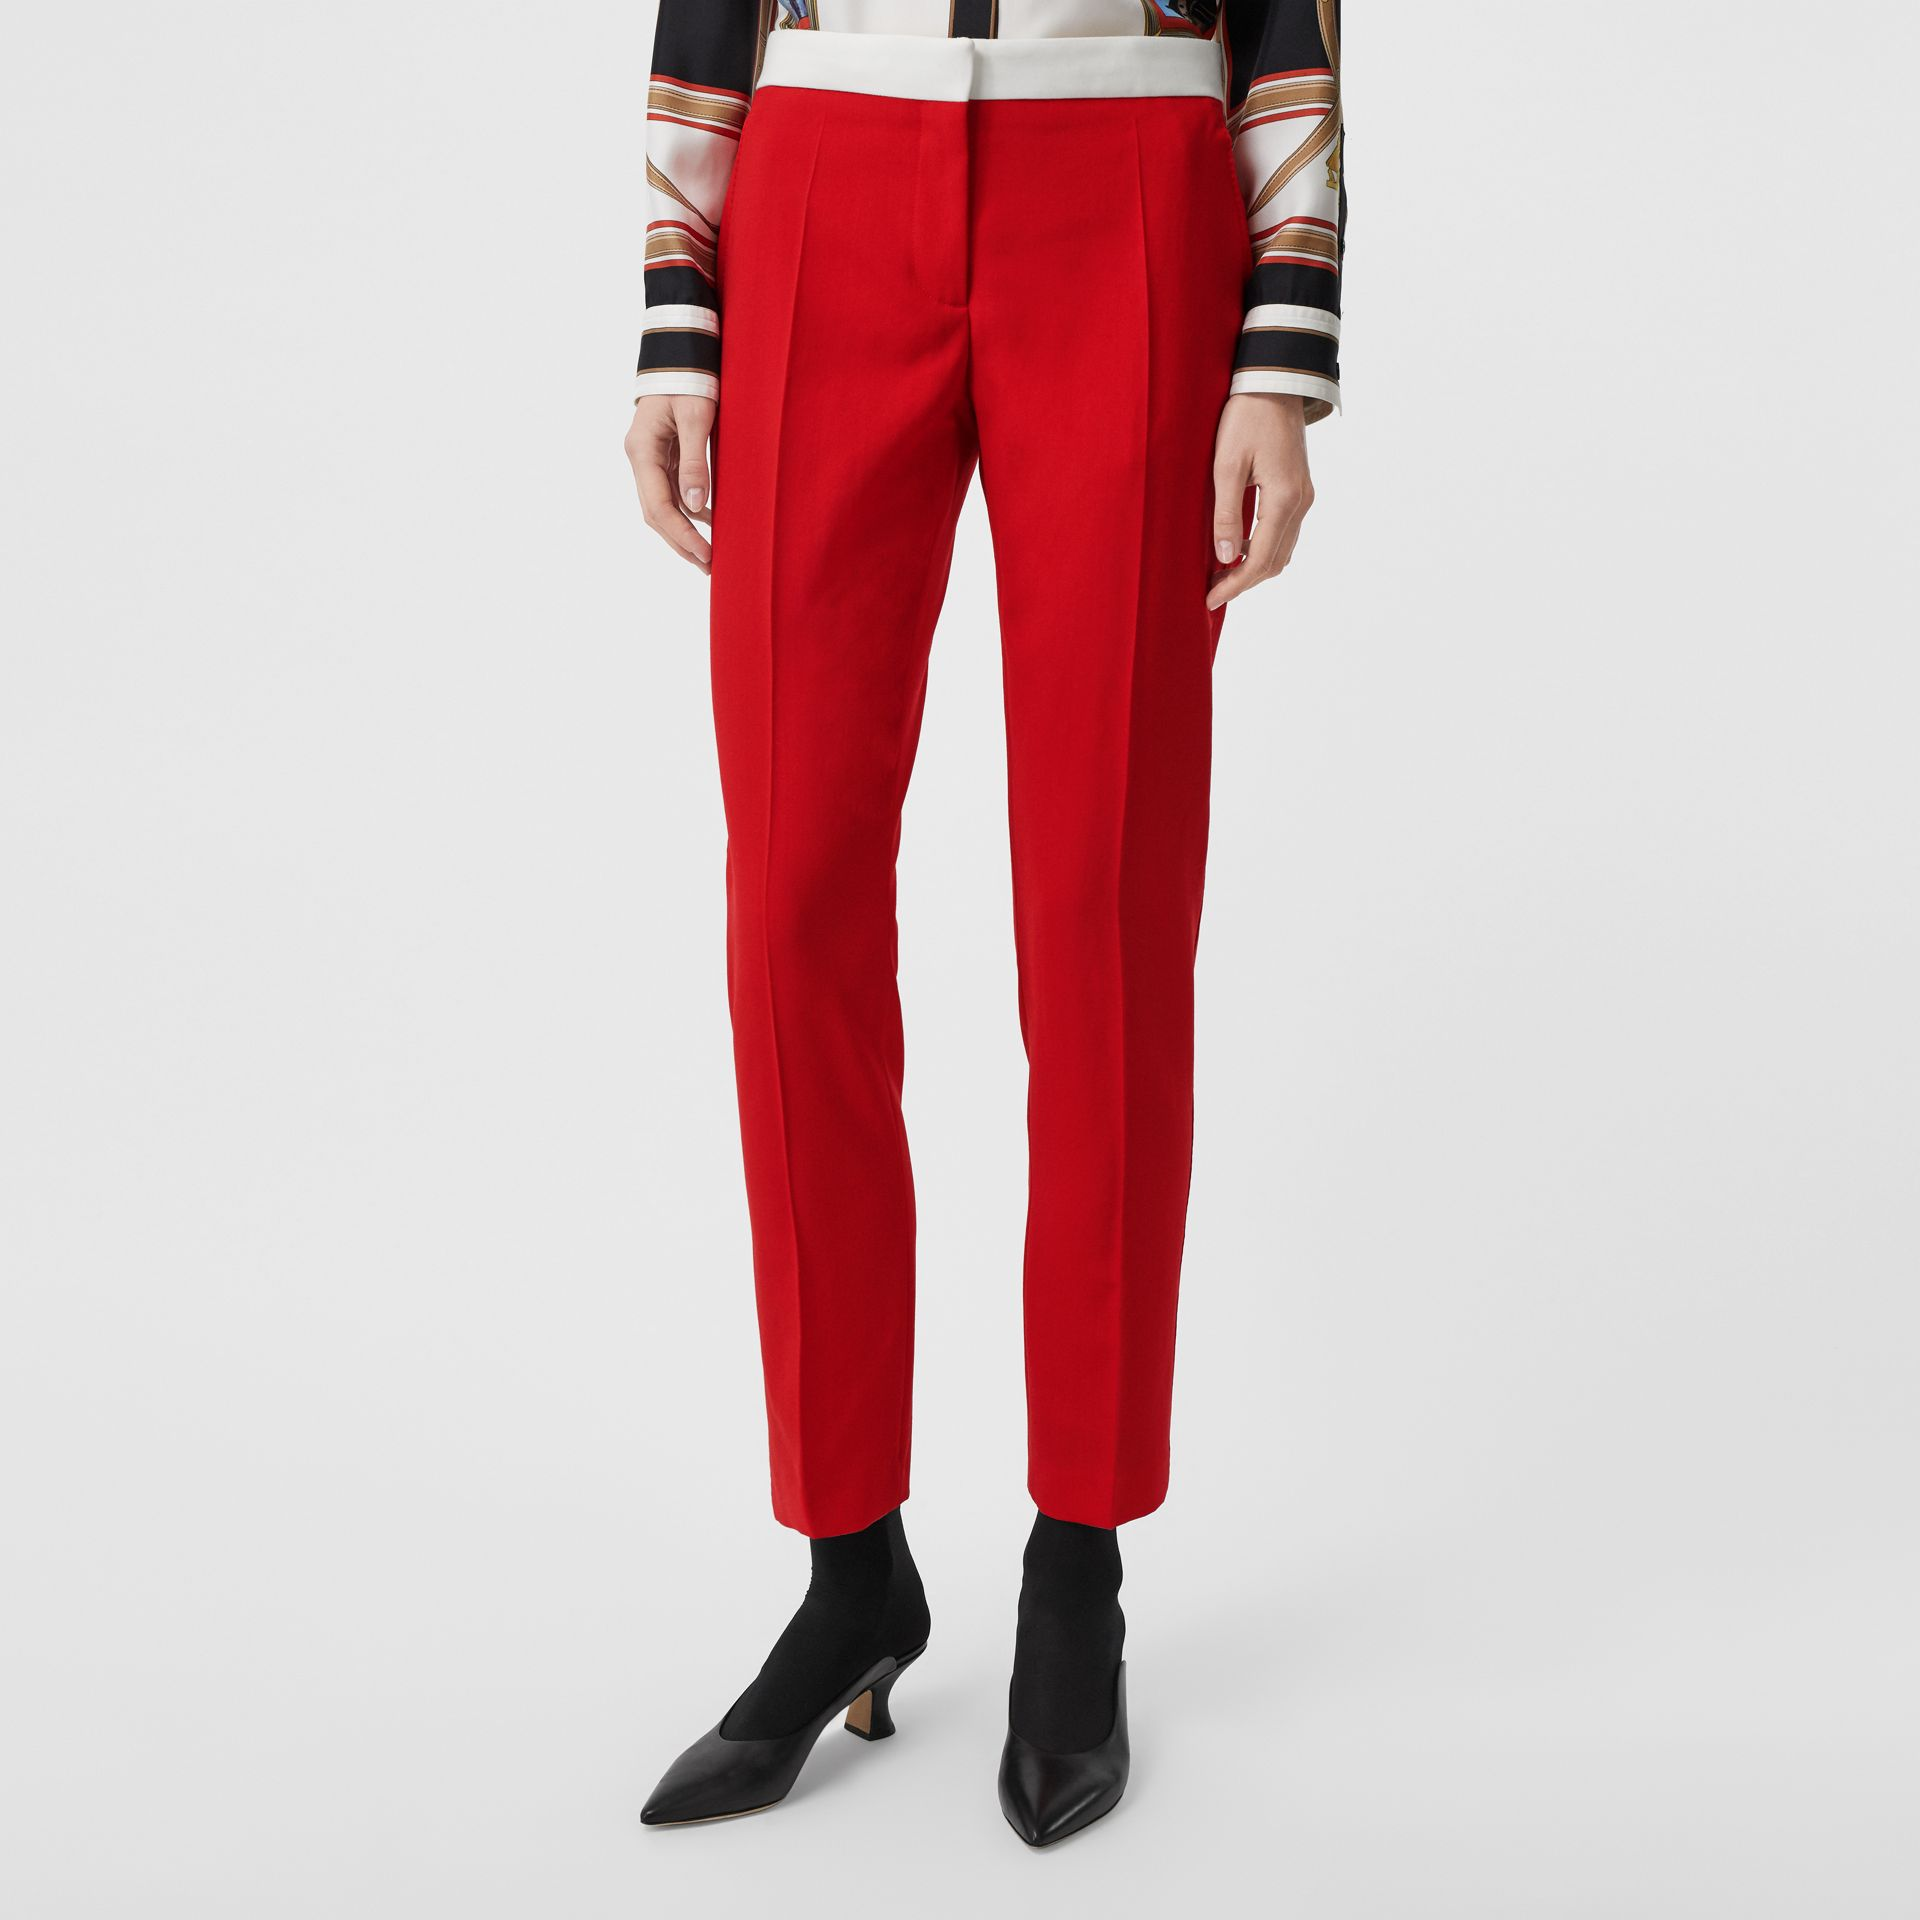 Two-tone Wool Tailored Trousers in Bright Red - Women | Burberry United States - gallery image 4